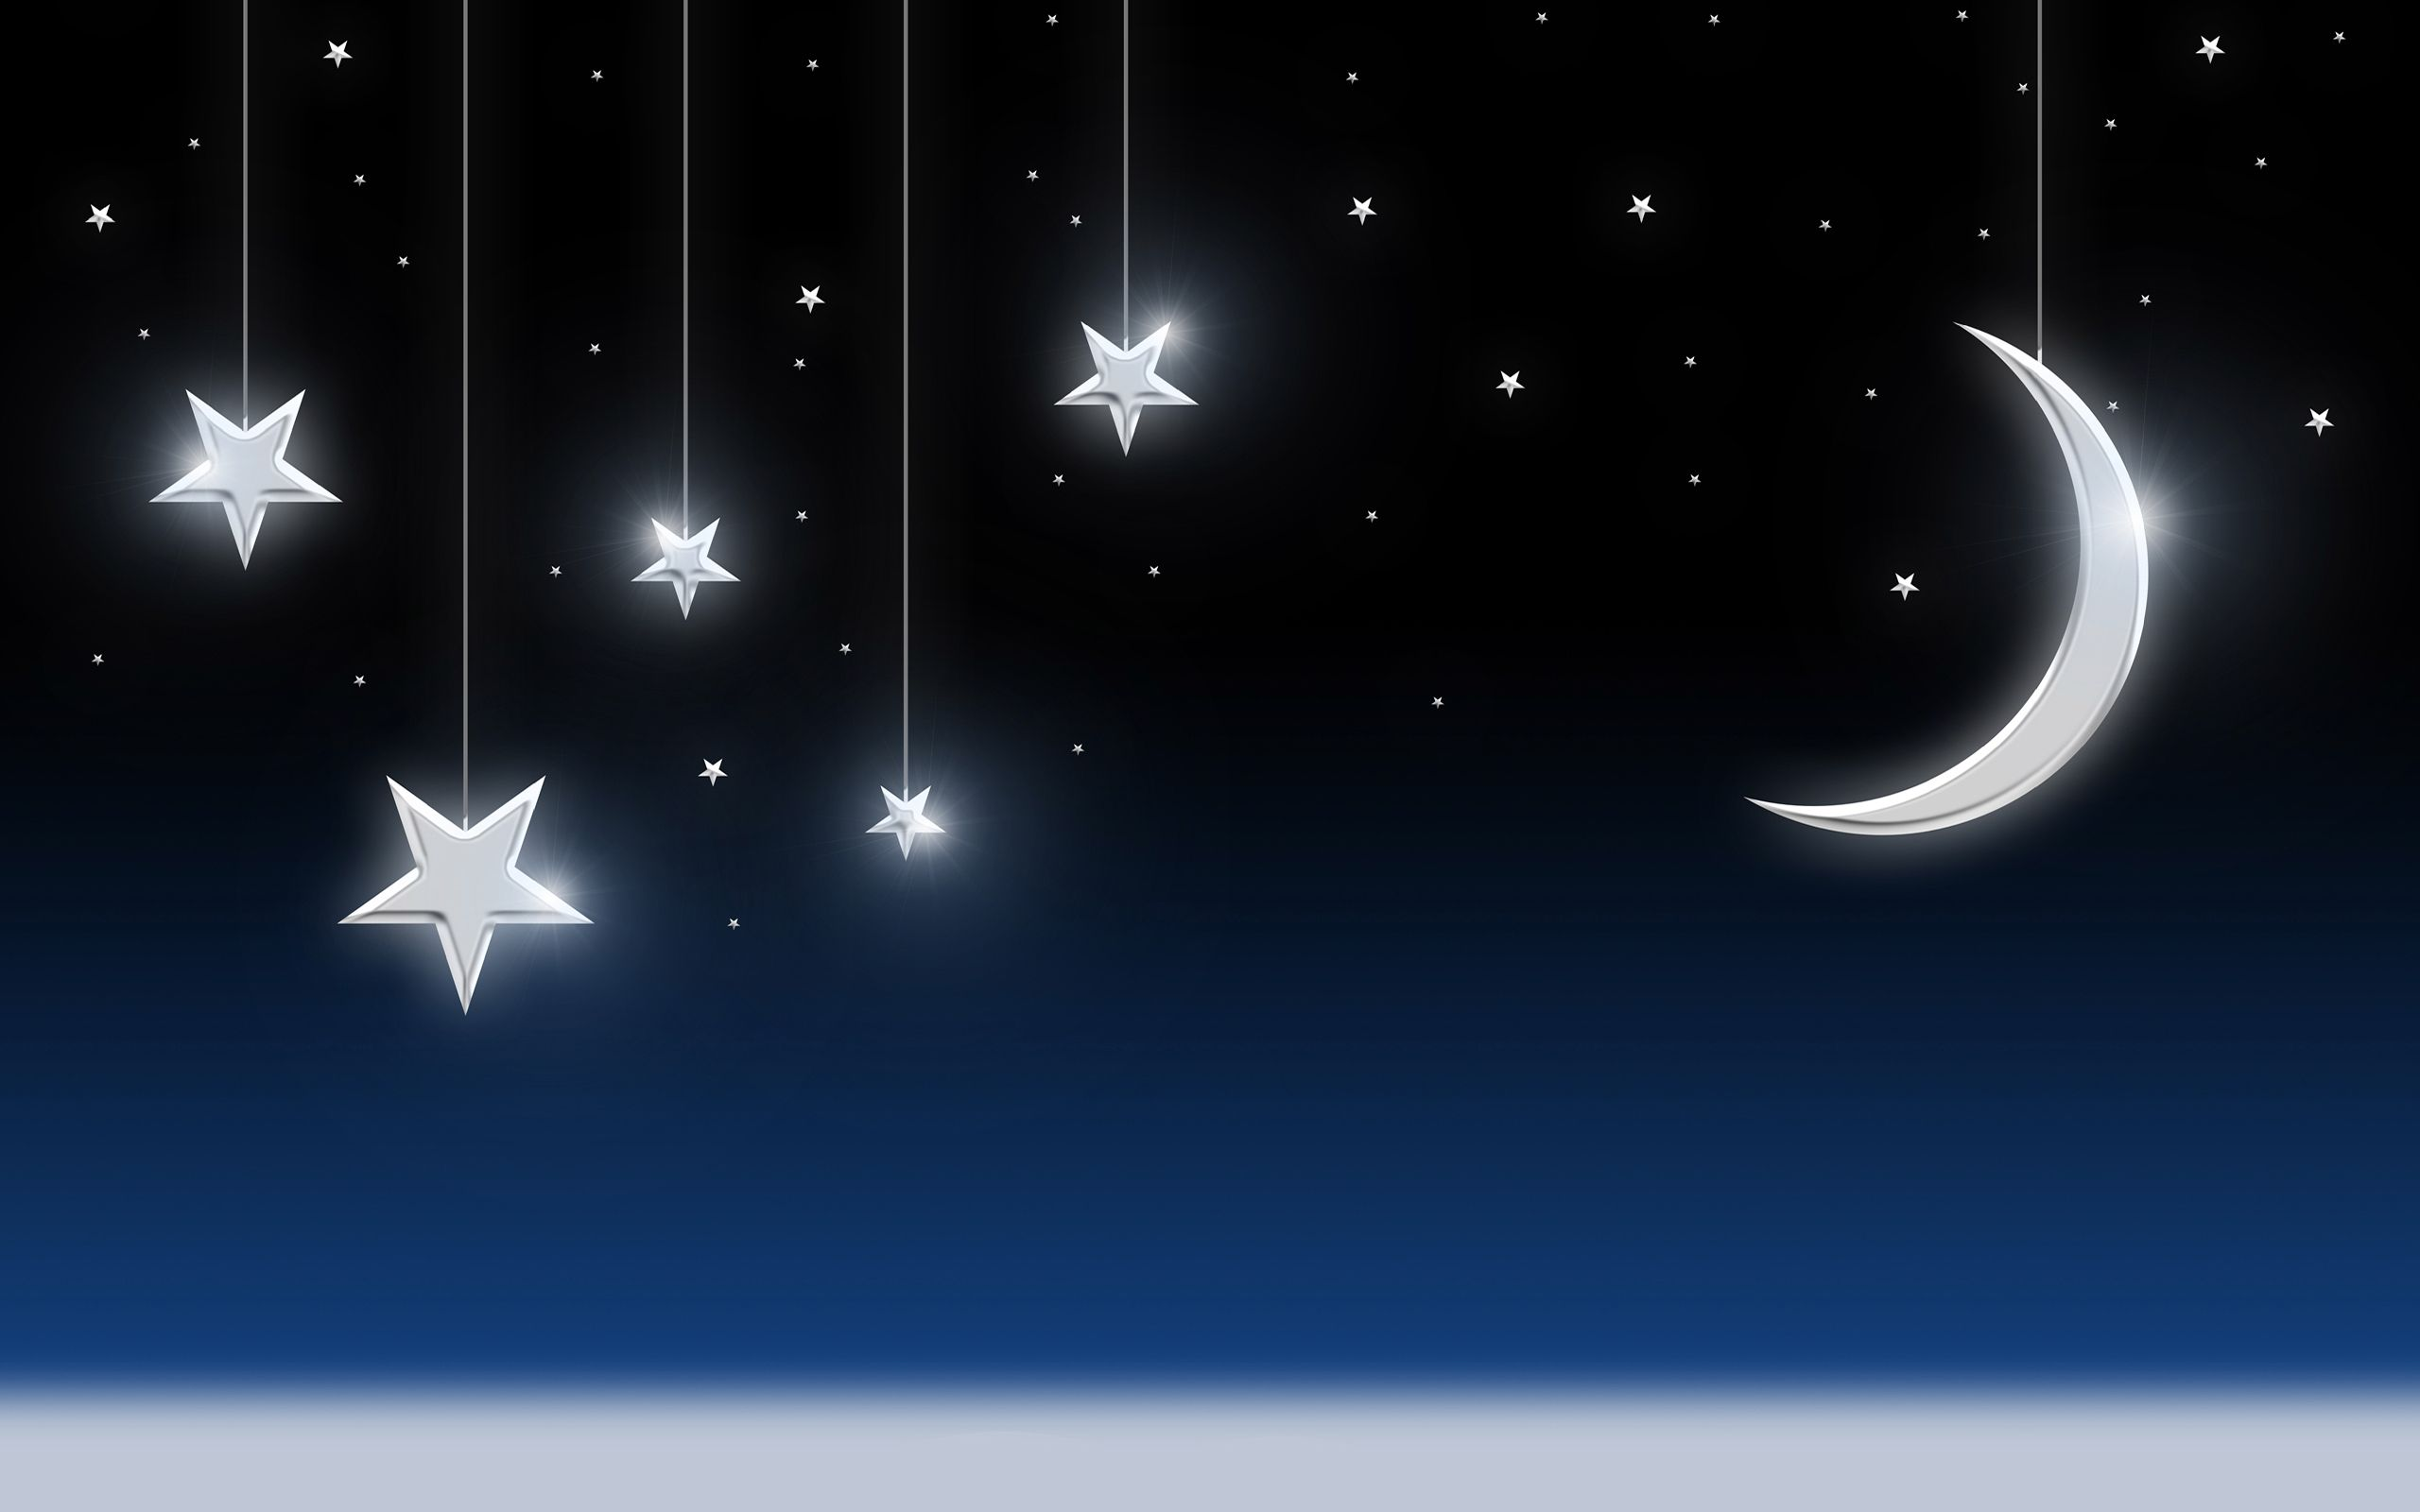 Night Sky Stars Wallpapers